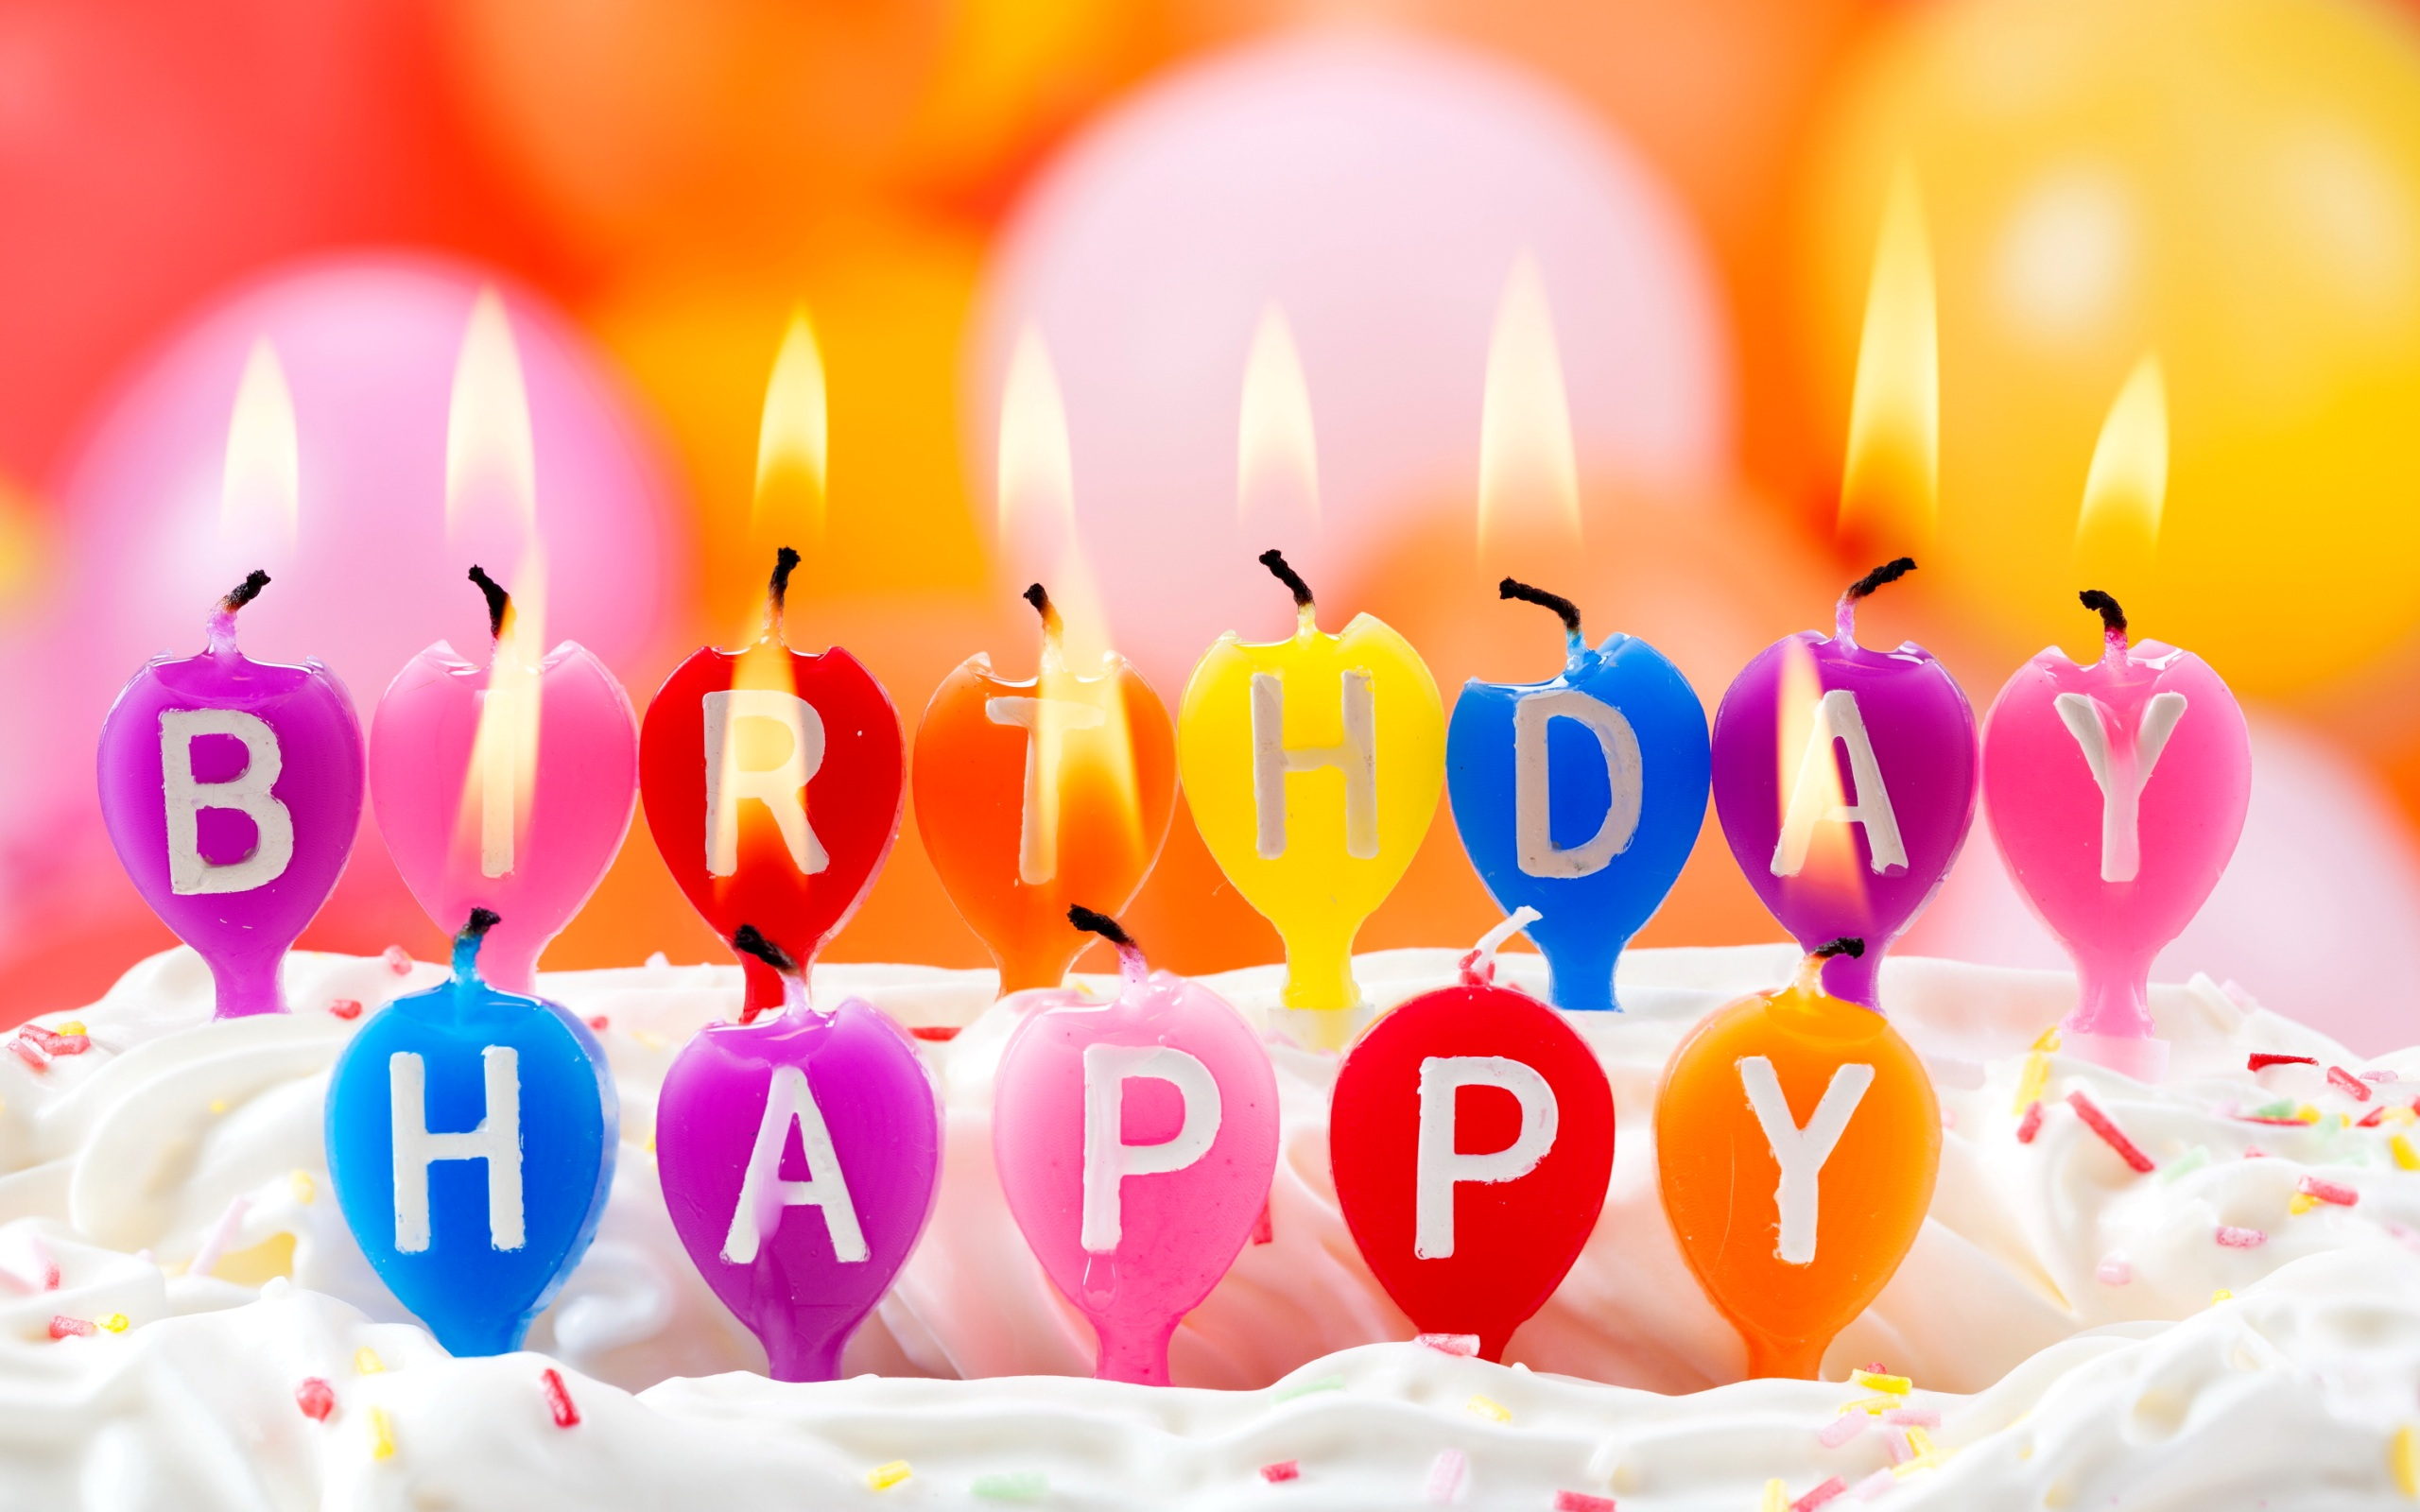 happy birthday wishes hd images free download ; Happy-Birthday-HD-Image-1